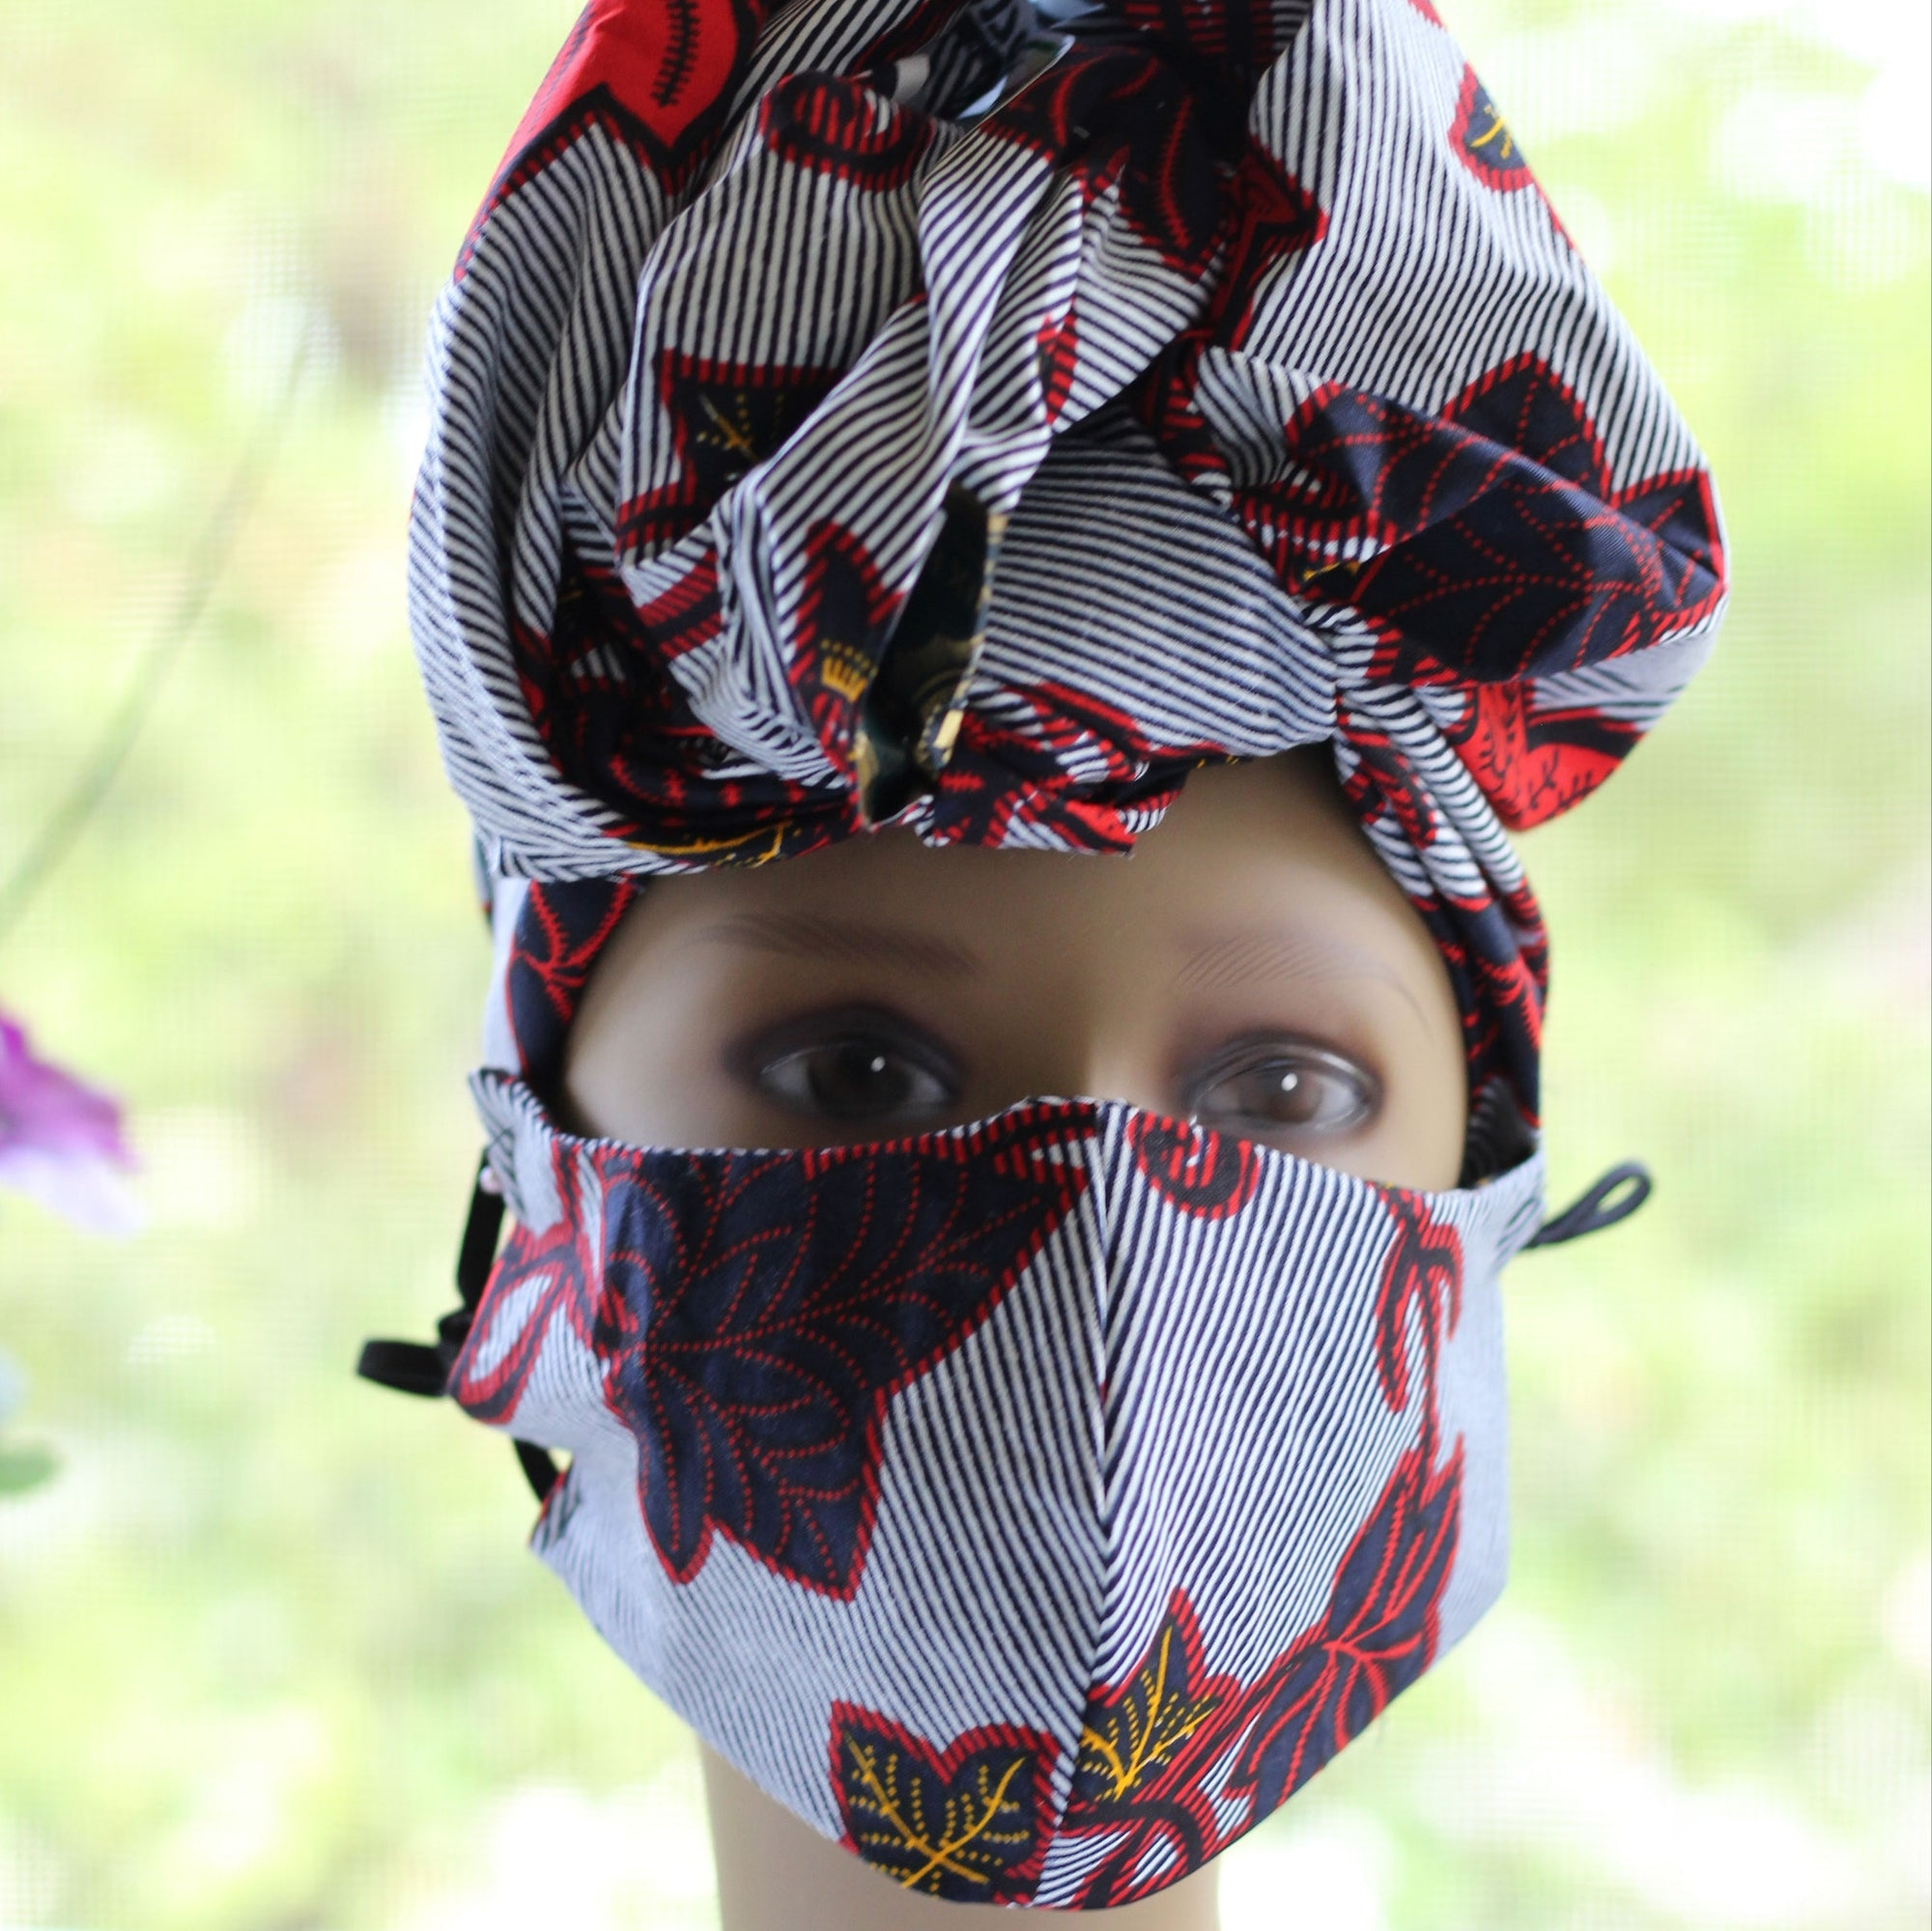 Ankara /African Print Mask (Headwrap Set) -  White/Black / Red Floral Print - Africas Closet